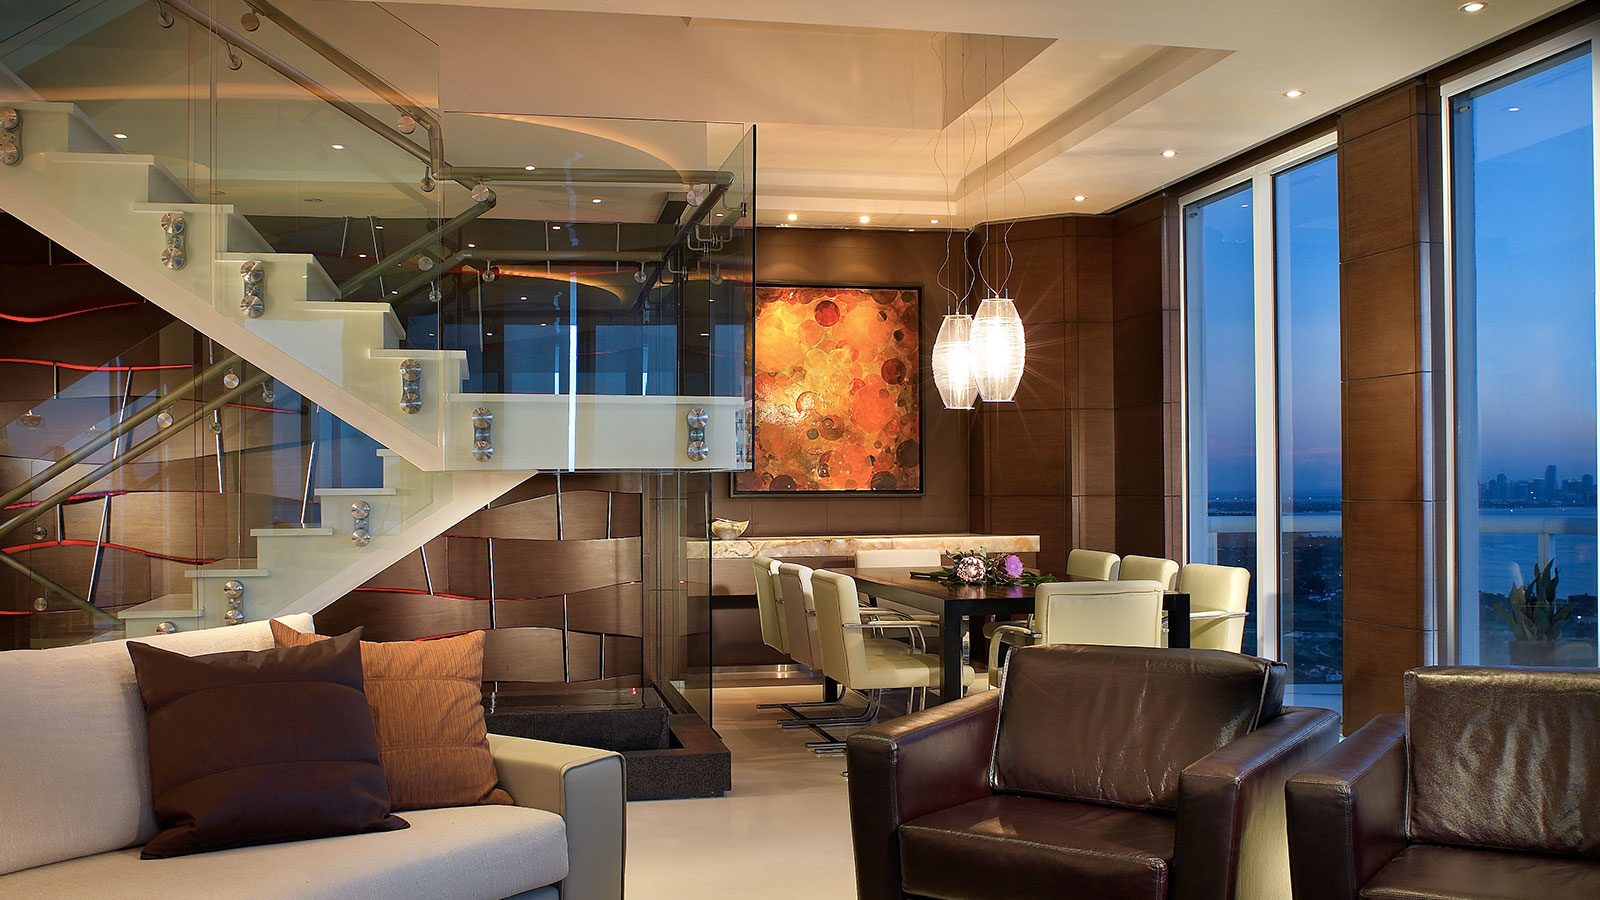 Akoya Mayor Residence Stunning Modern Penthouse In Miami Beach Florida That Feels Warm And